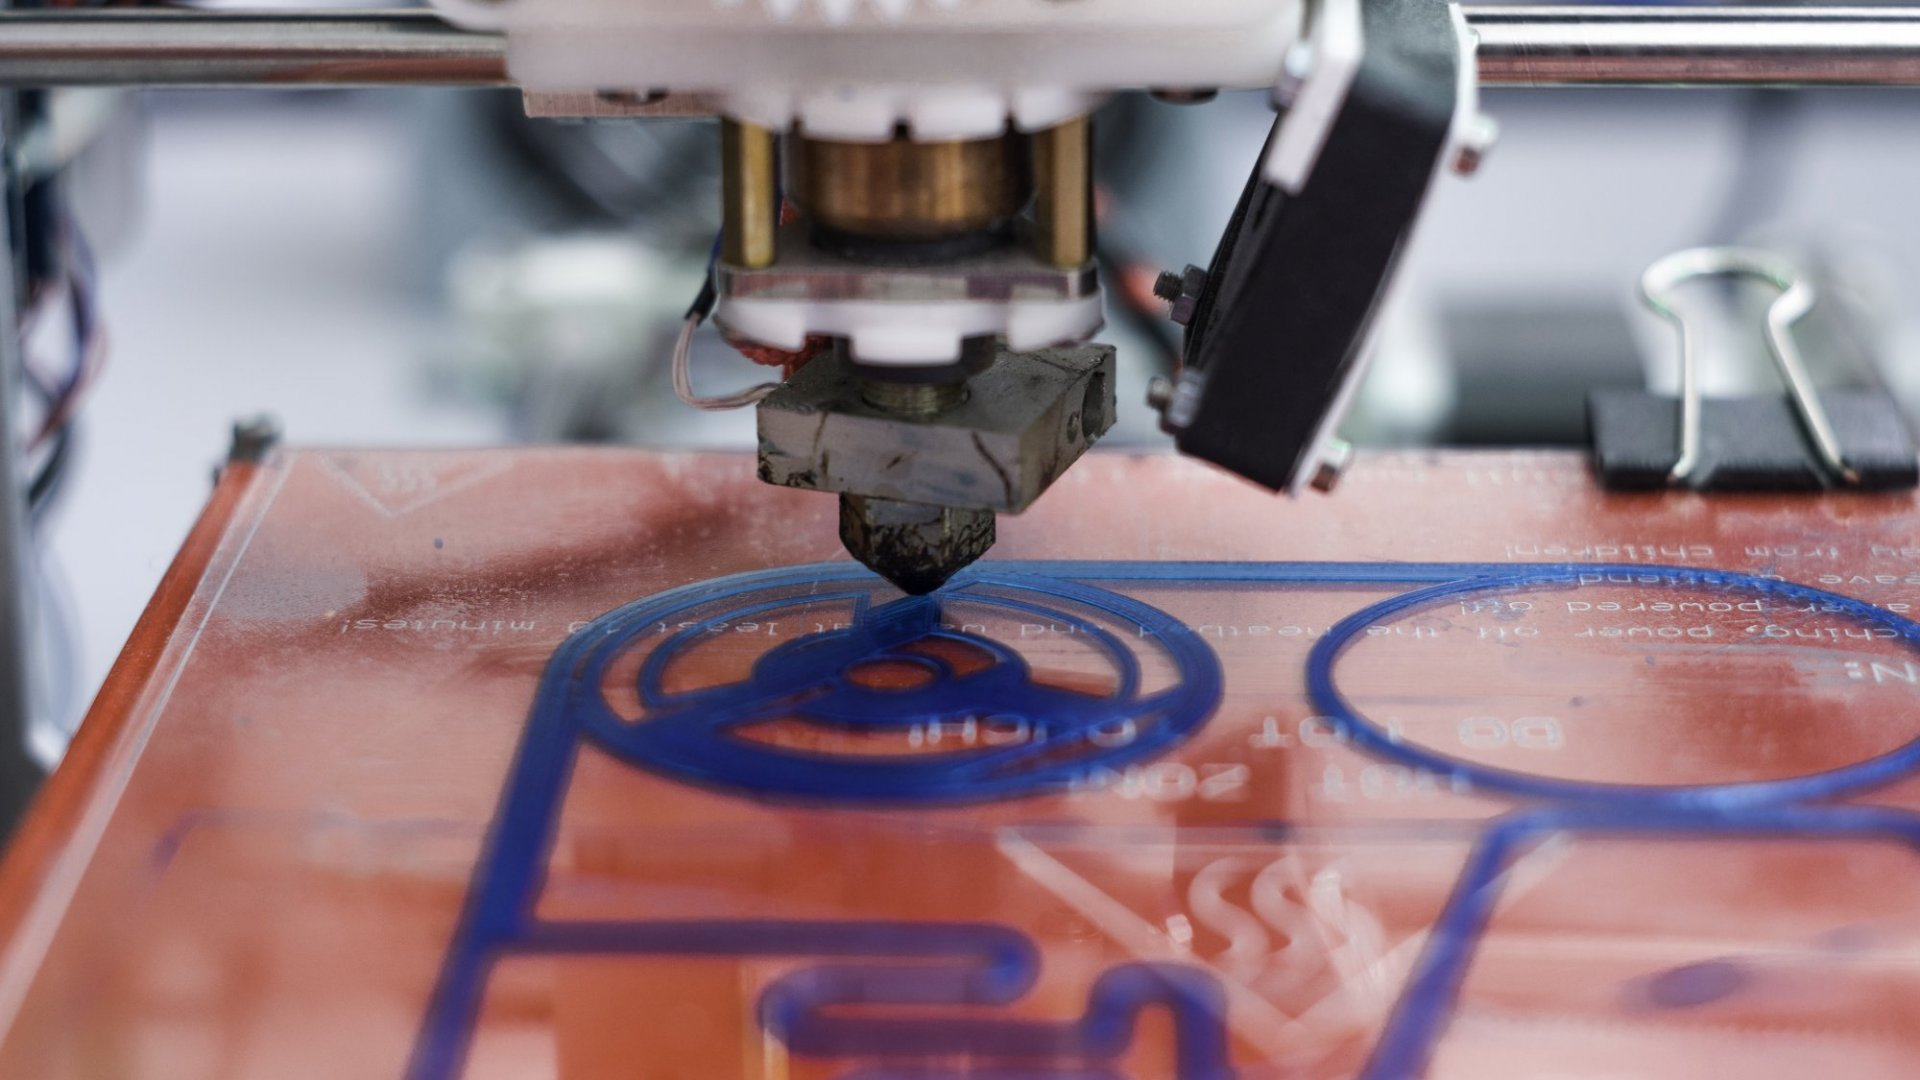 Can You Guess What 3 Industries Are Getting Innovative With 3-D Printing? Hint: The Tech Industry Isn't One of Them